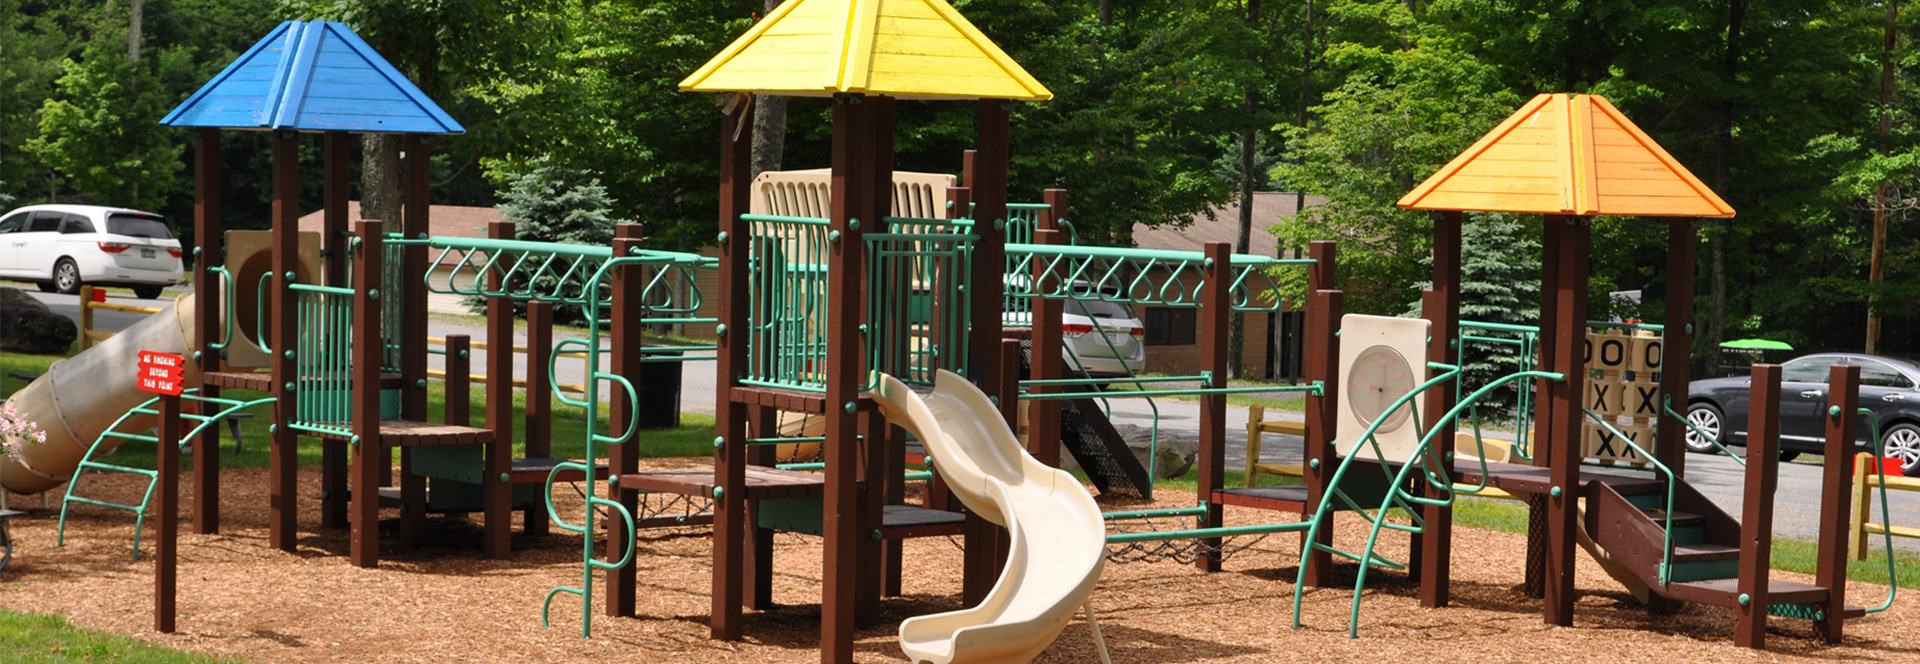 eagle-lake-playground-beach-11